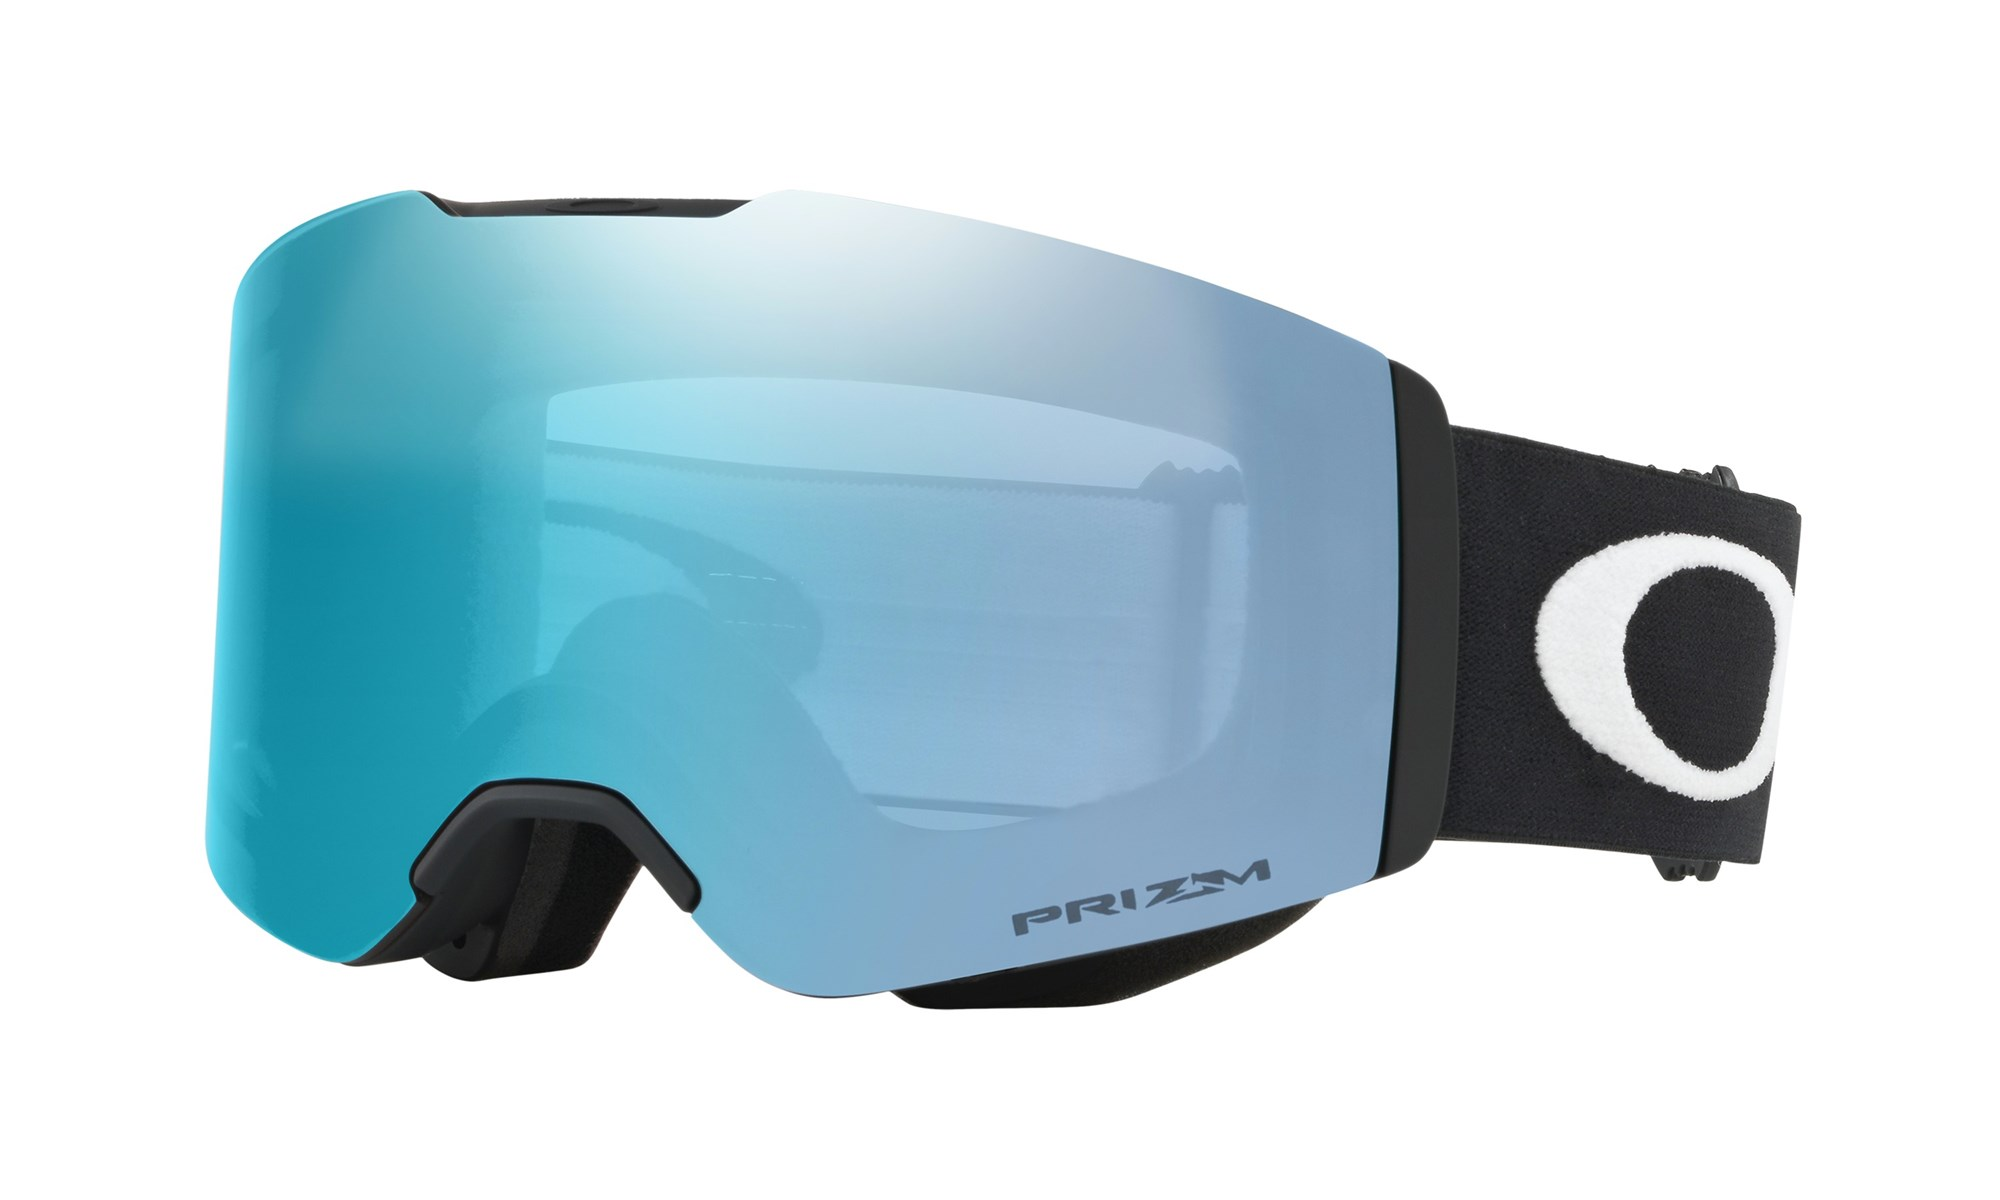 ac54898c4aa6 Oakley Fall Line Ski Goggles 2019 Matte Black Prizm Sapphire. 0 (Be the  first to add a review!)